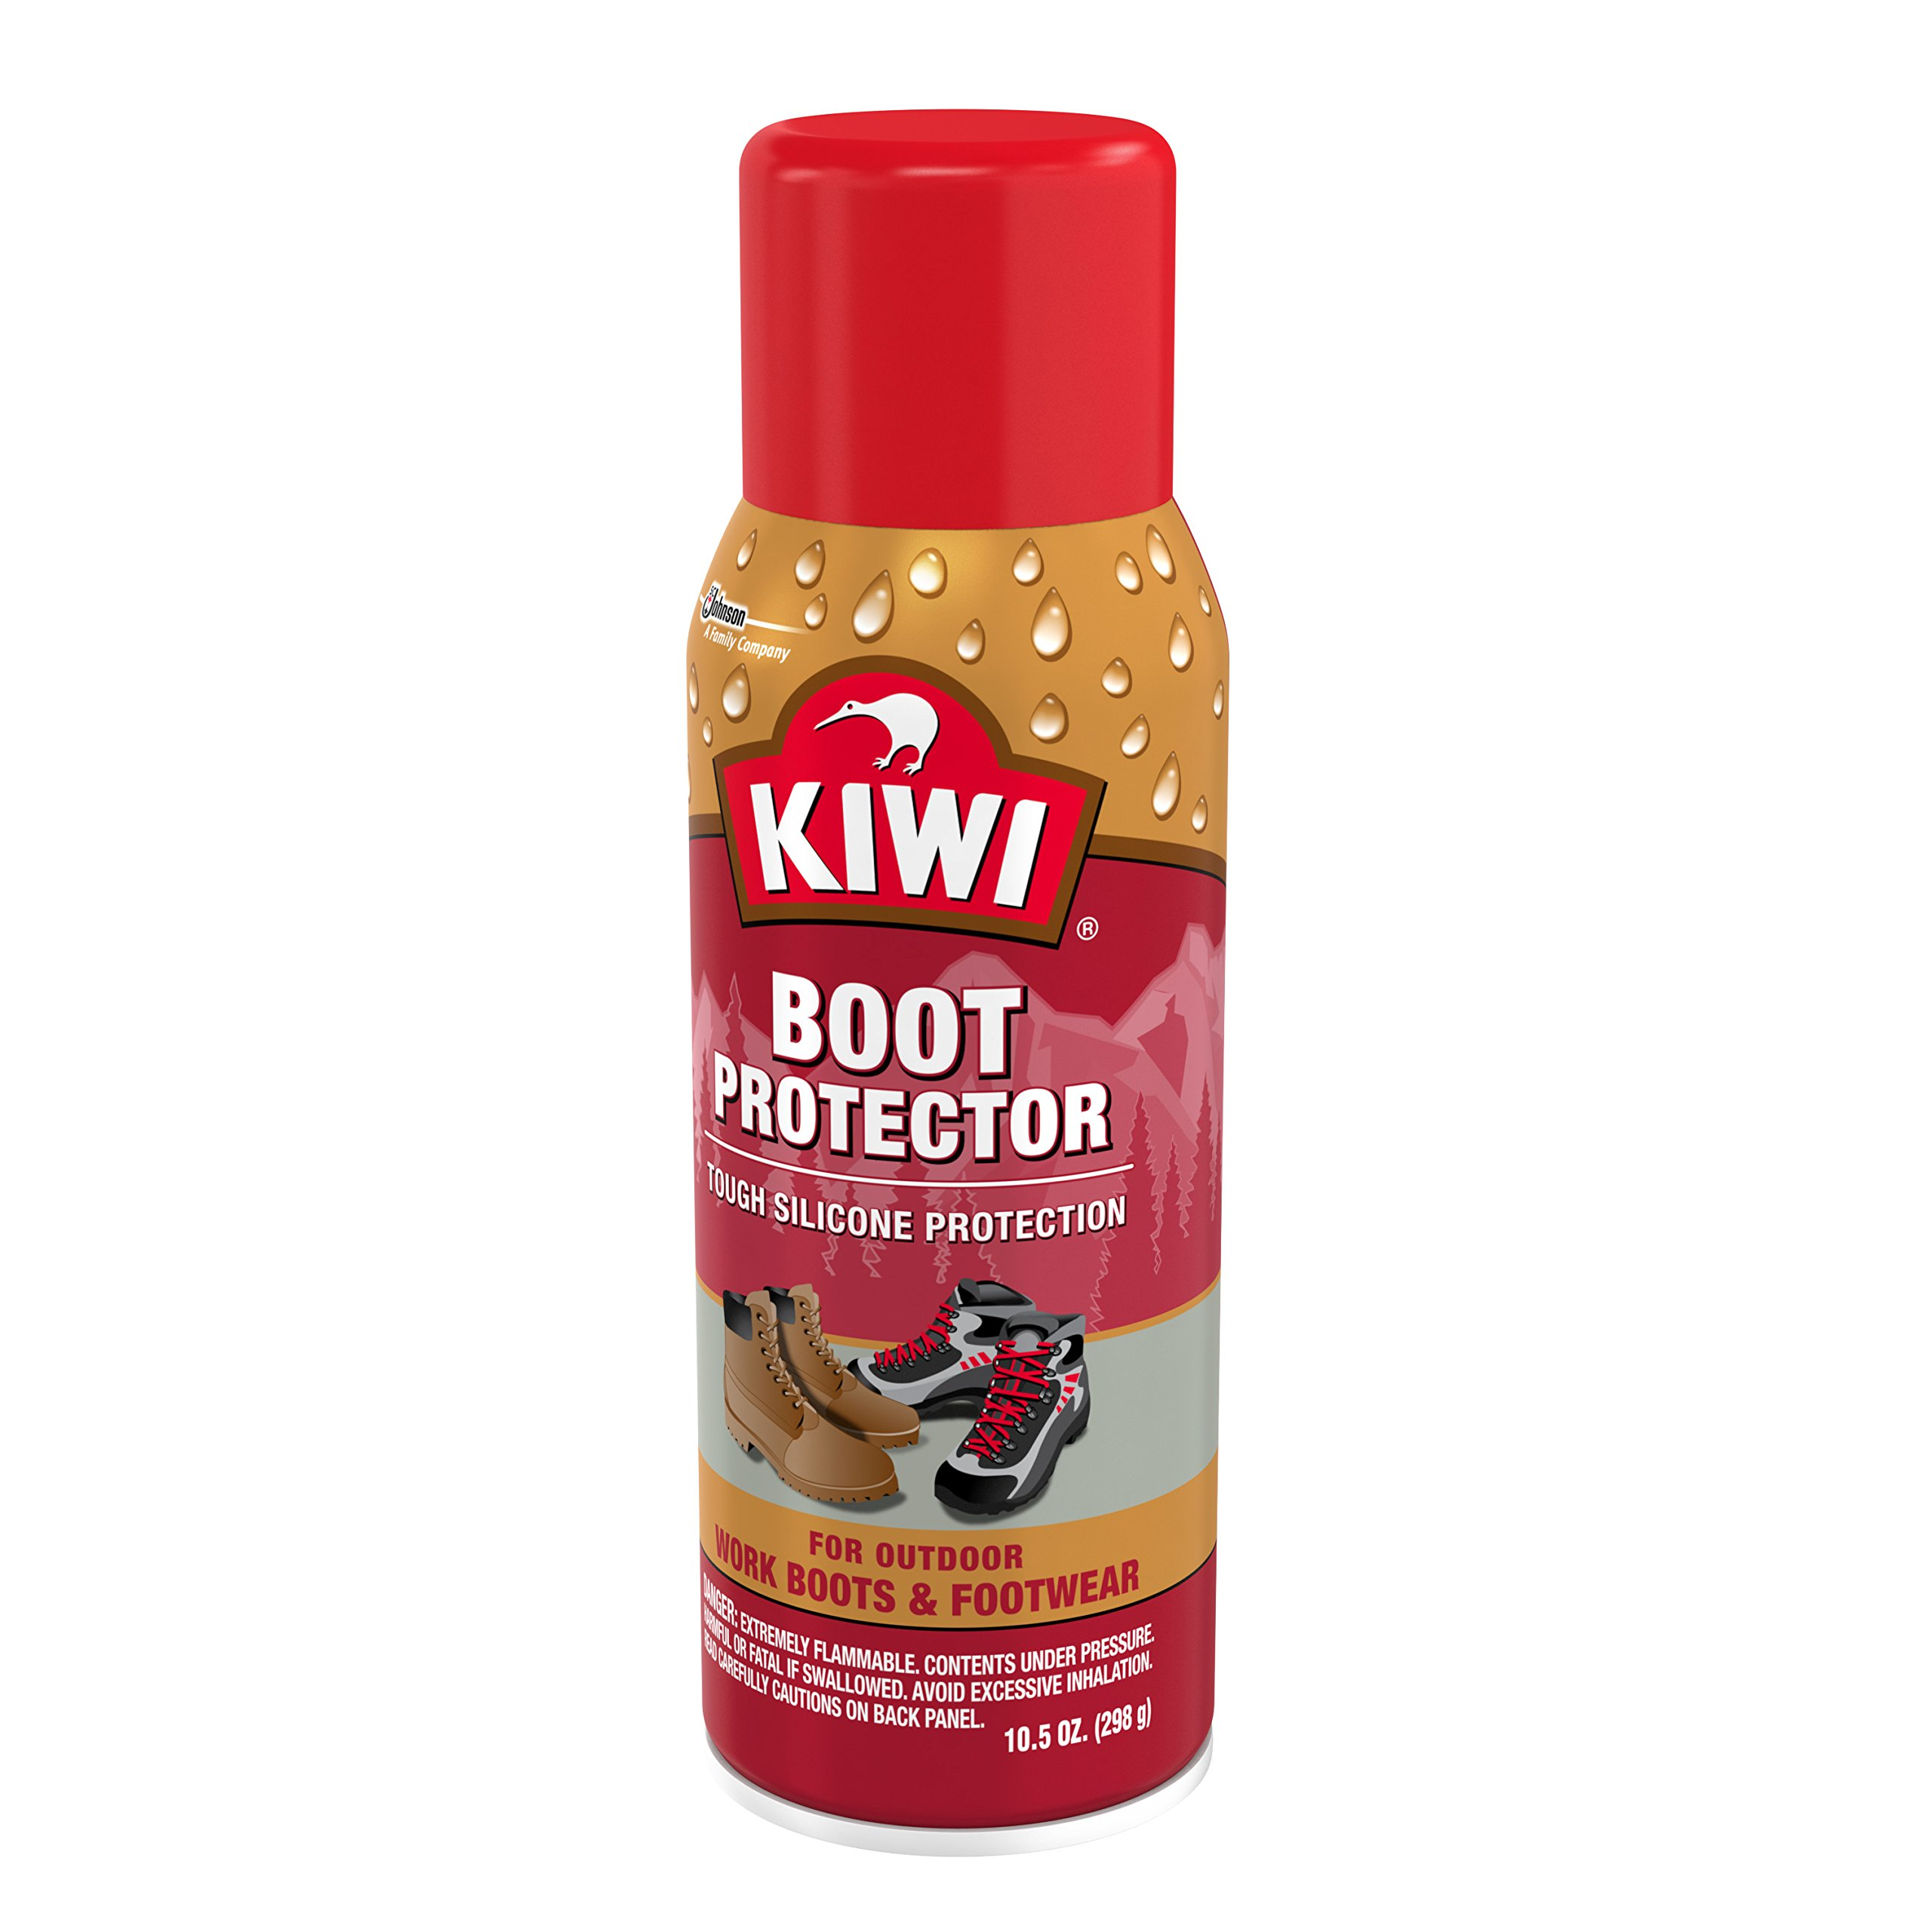 Kiwi Camp Dry Boot Protector, 12 oz., 3 Pack